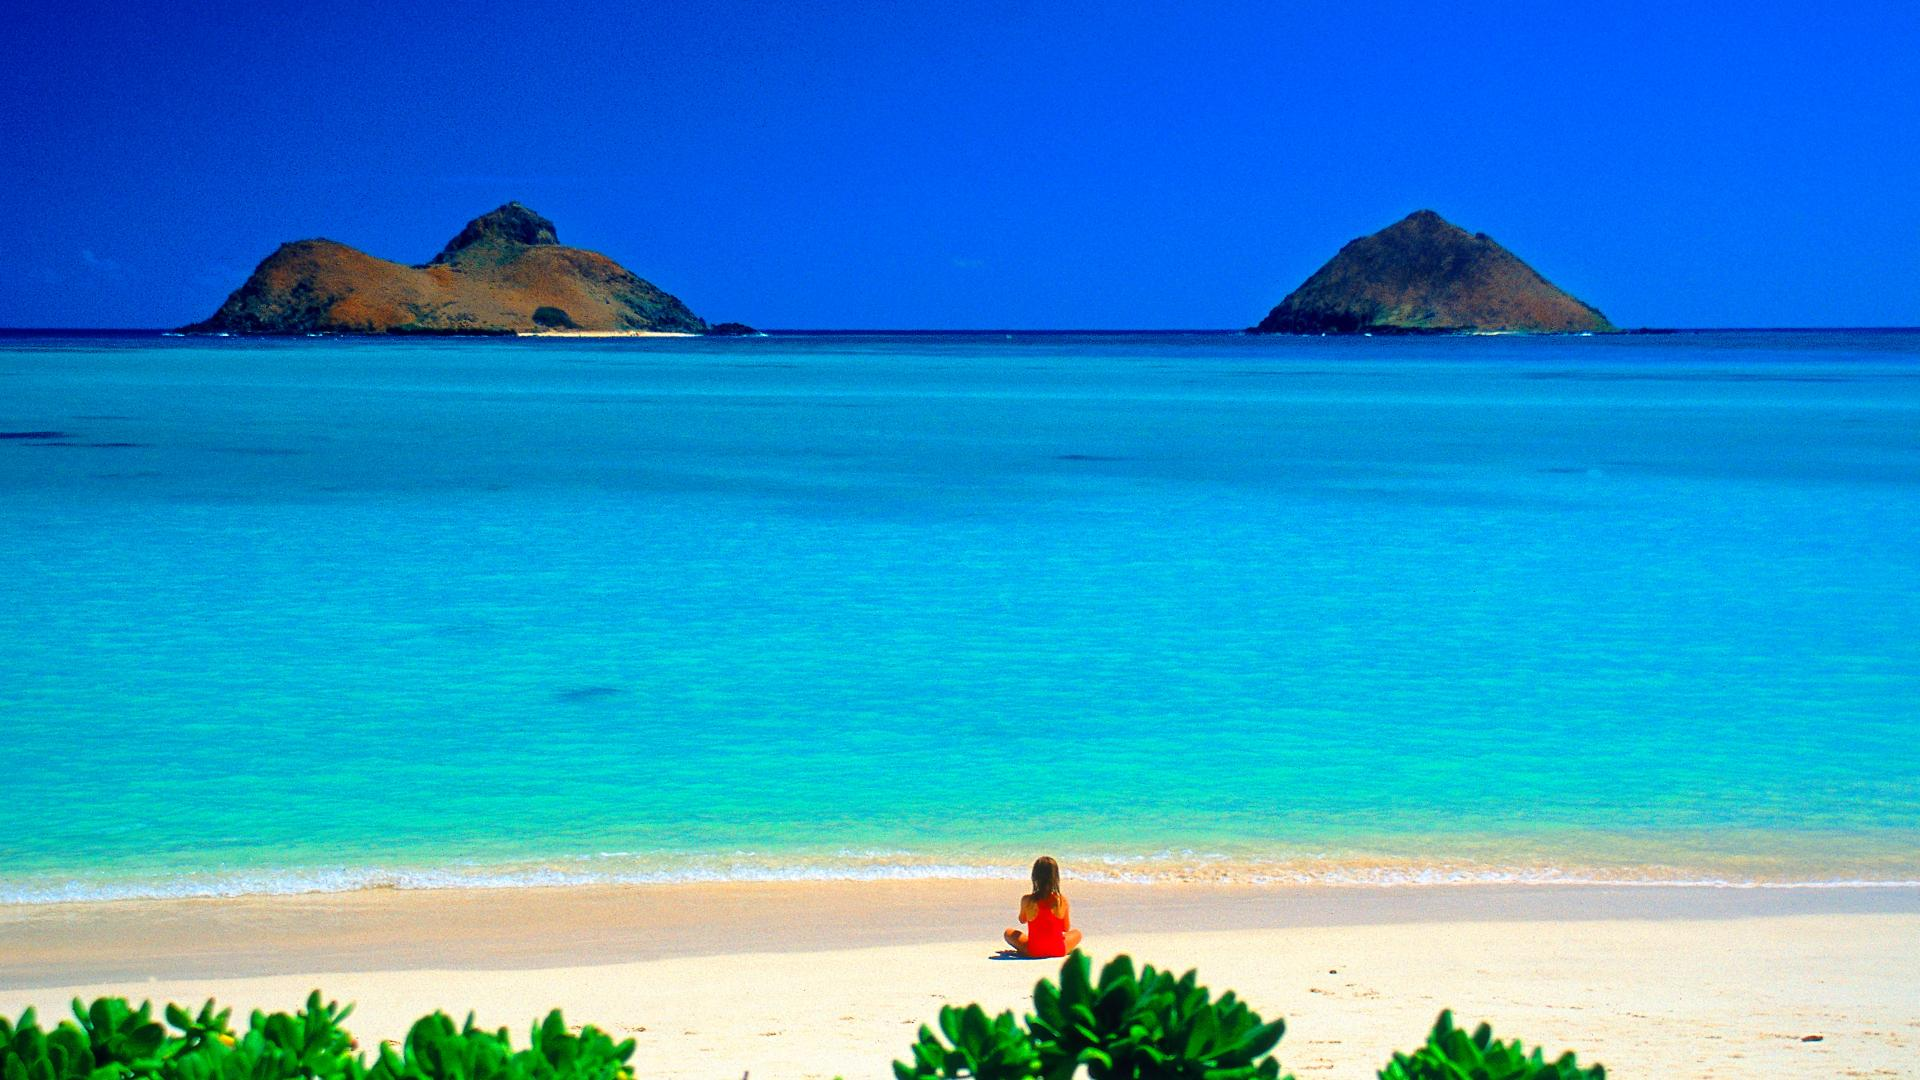 cool backgrounds beach hawaii 1920x1080px Wallpapers Full Size 1920x1080